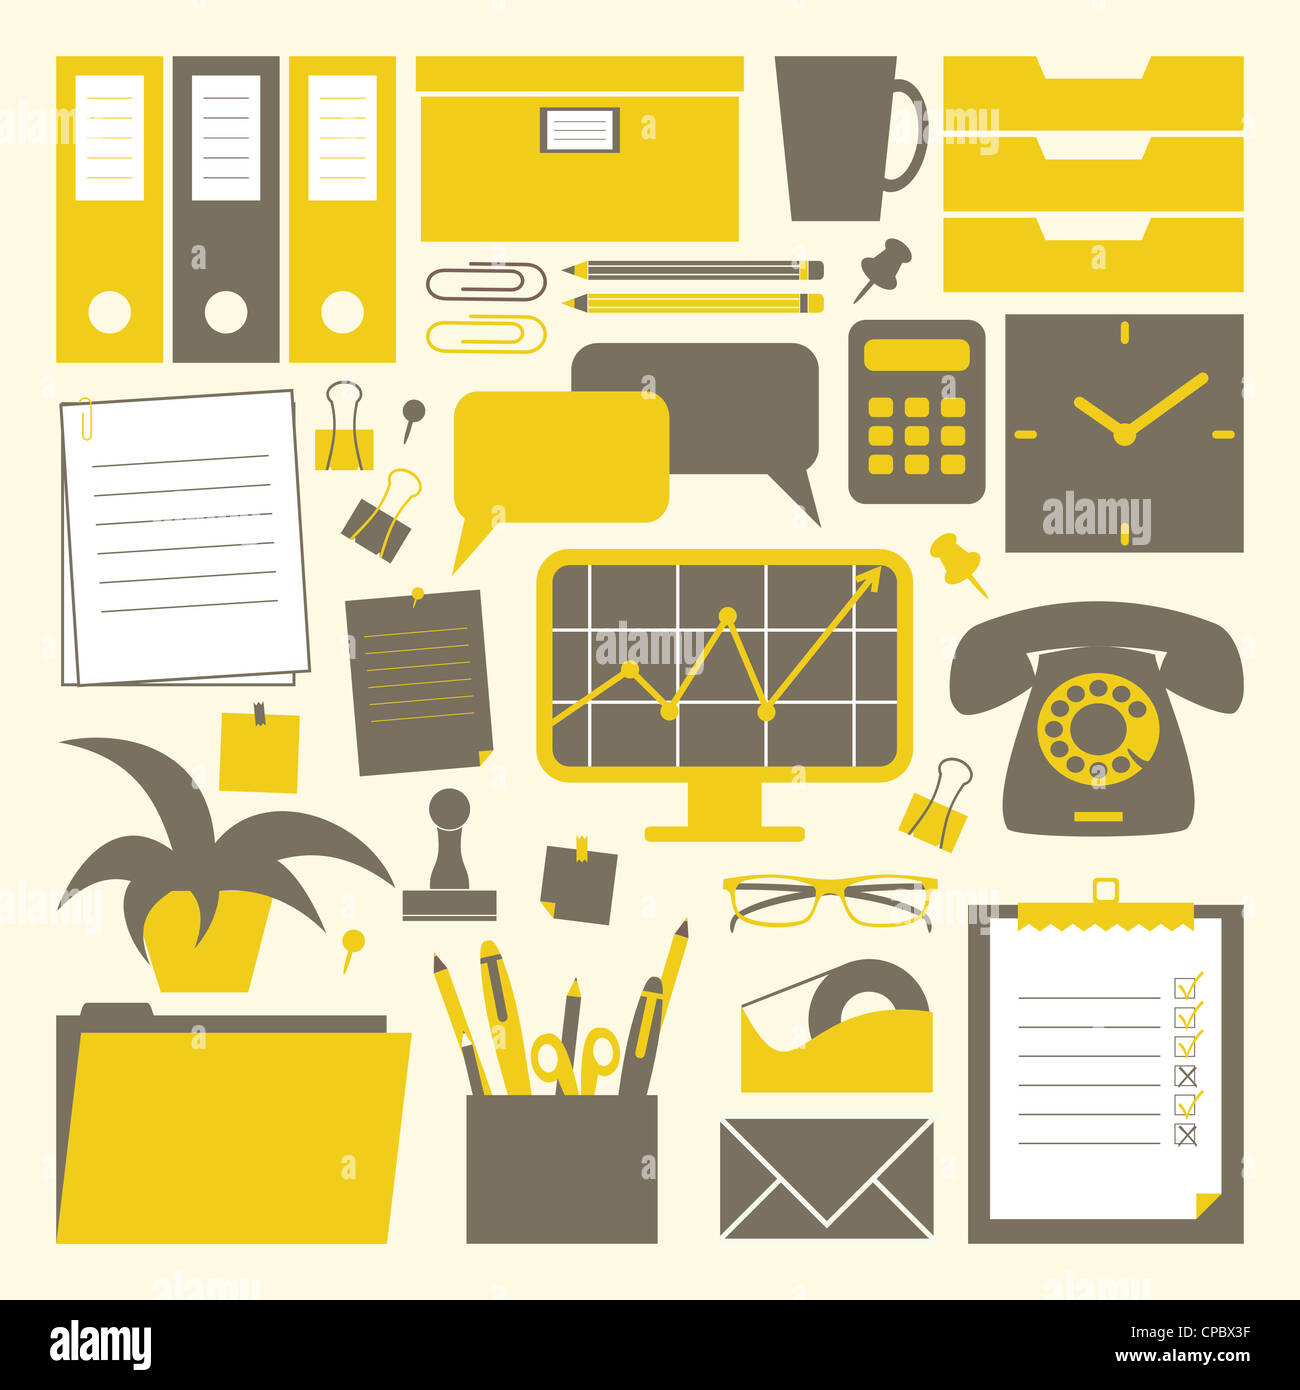 A collection of office related objects in yellow, dark grey and white. - Stock Image